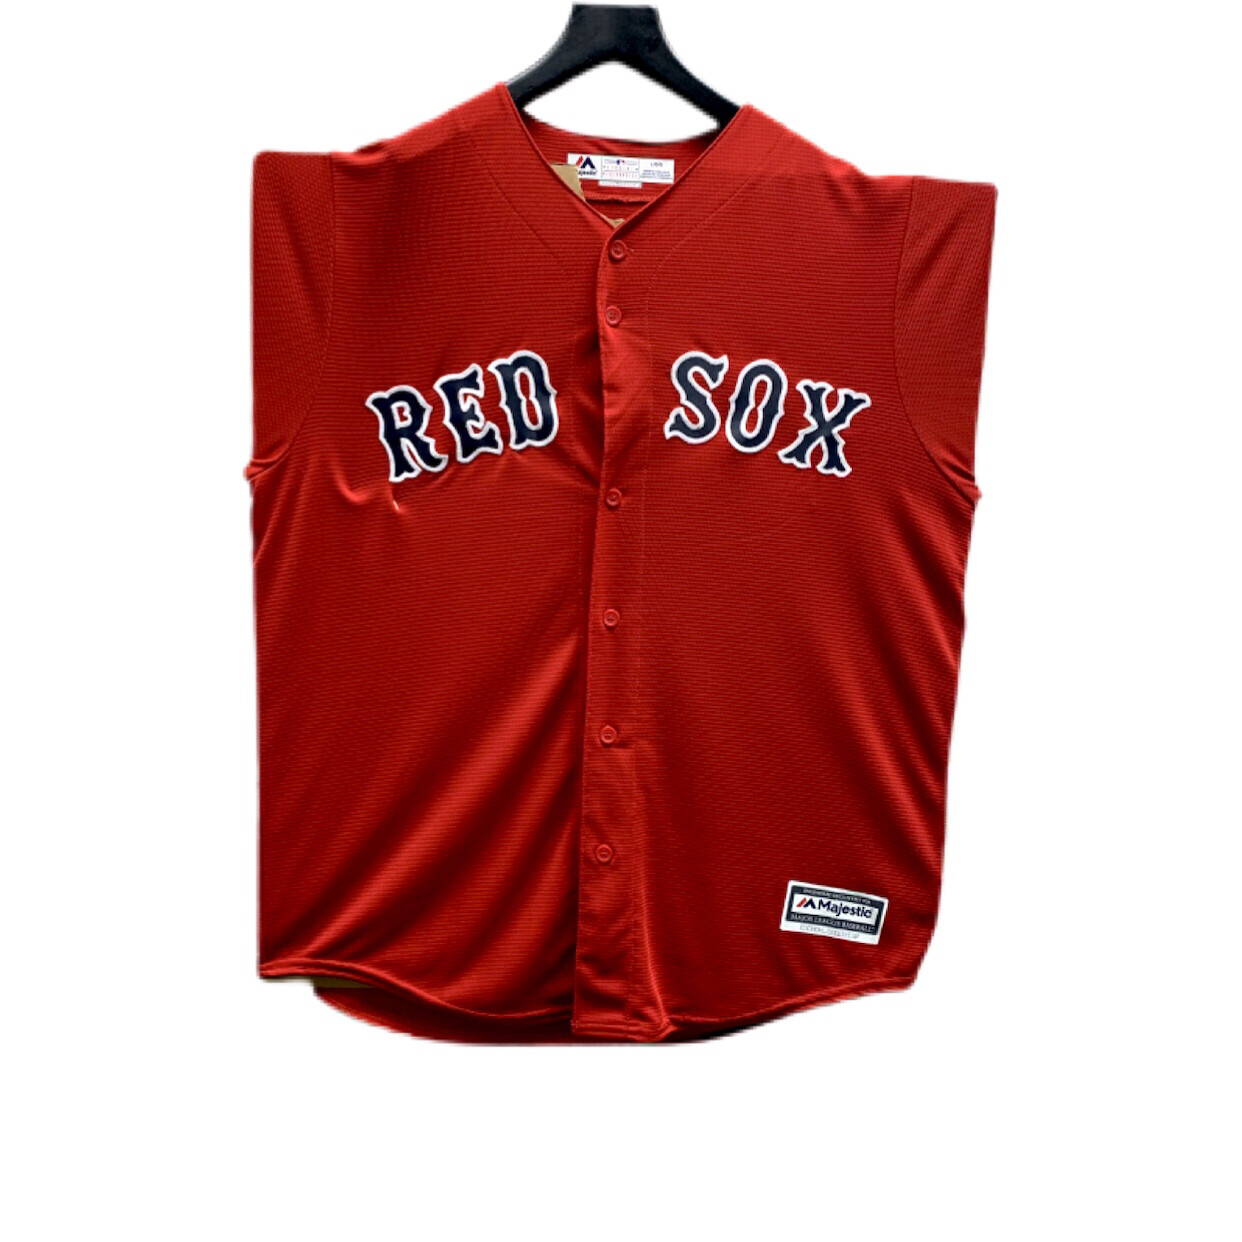 David Ortiz Authentic Majestic Baseball Jersey